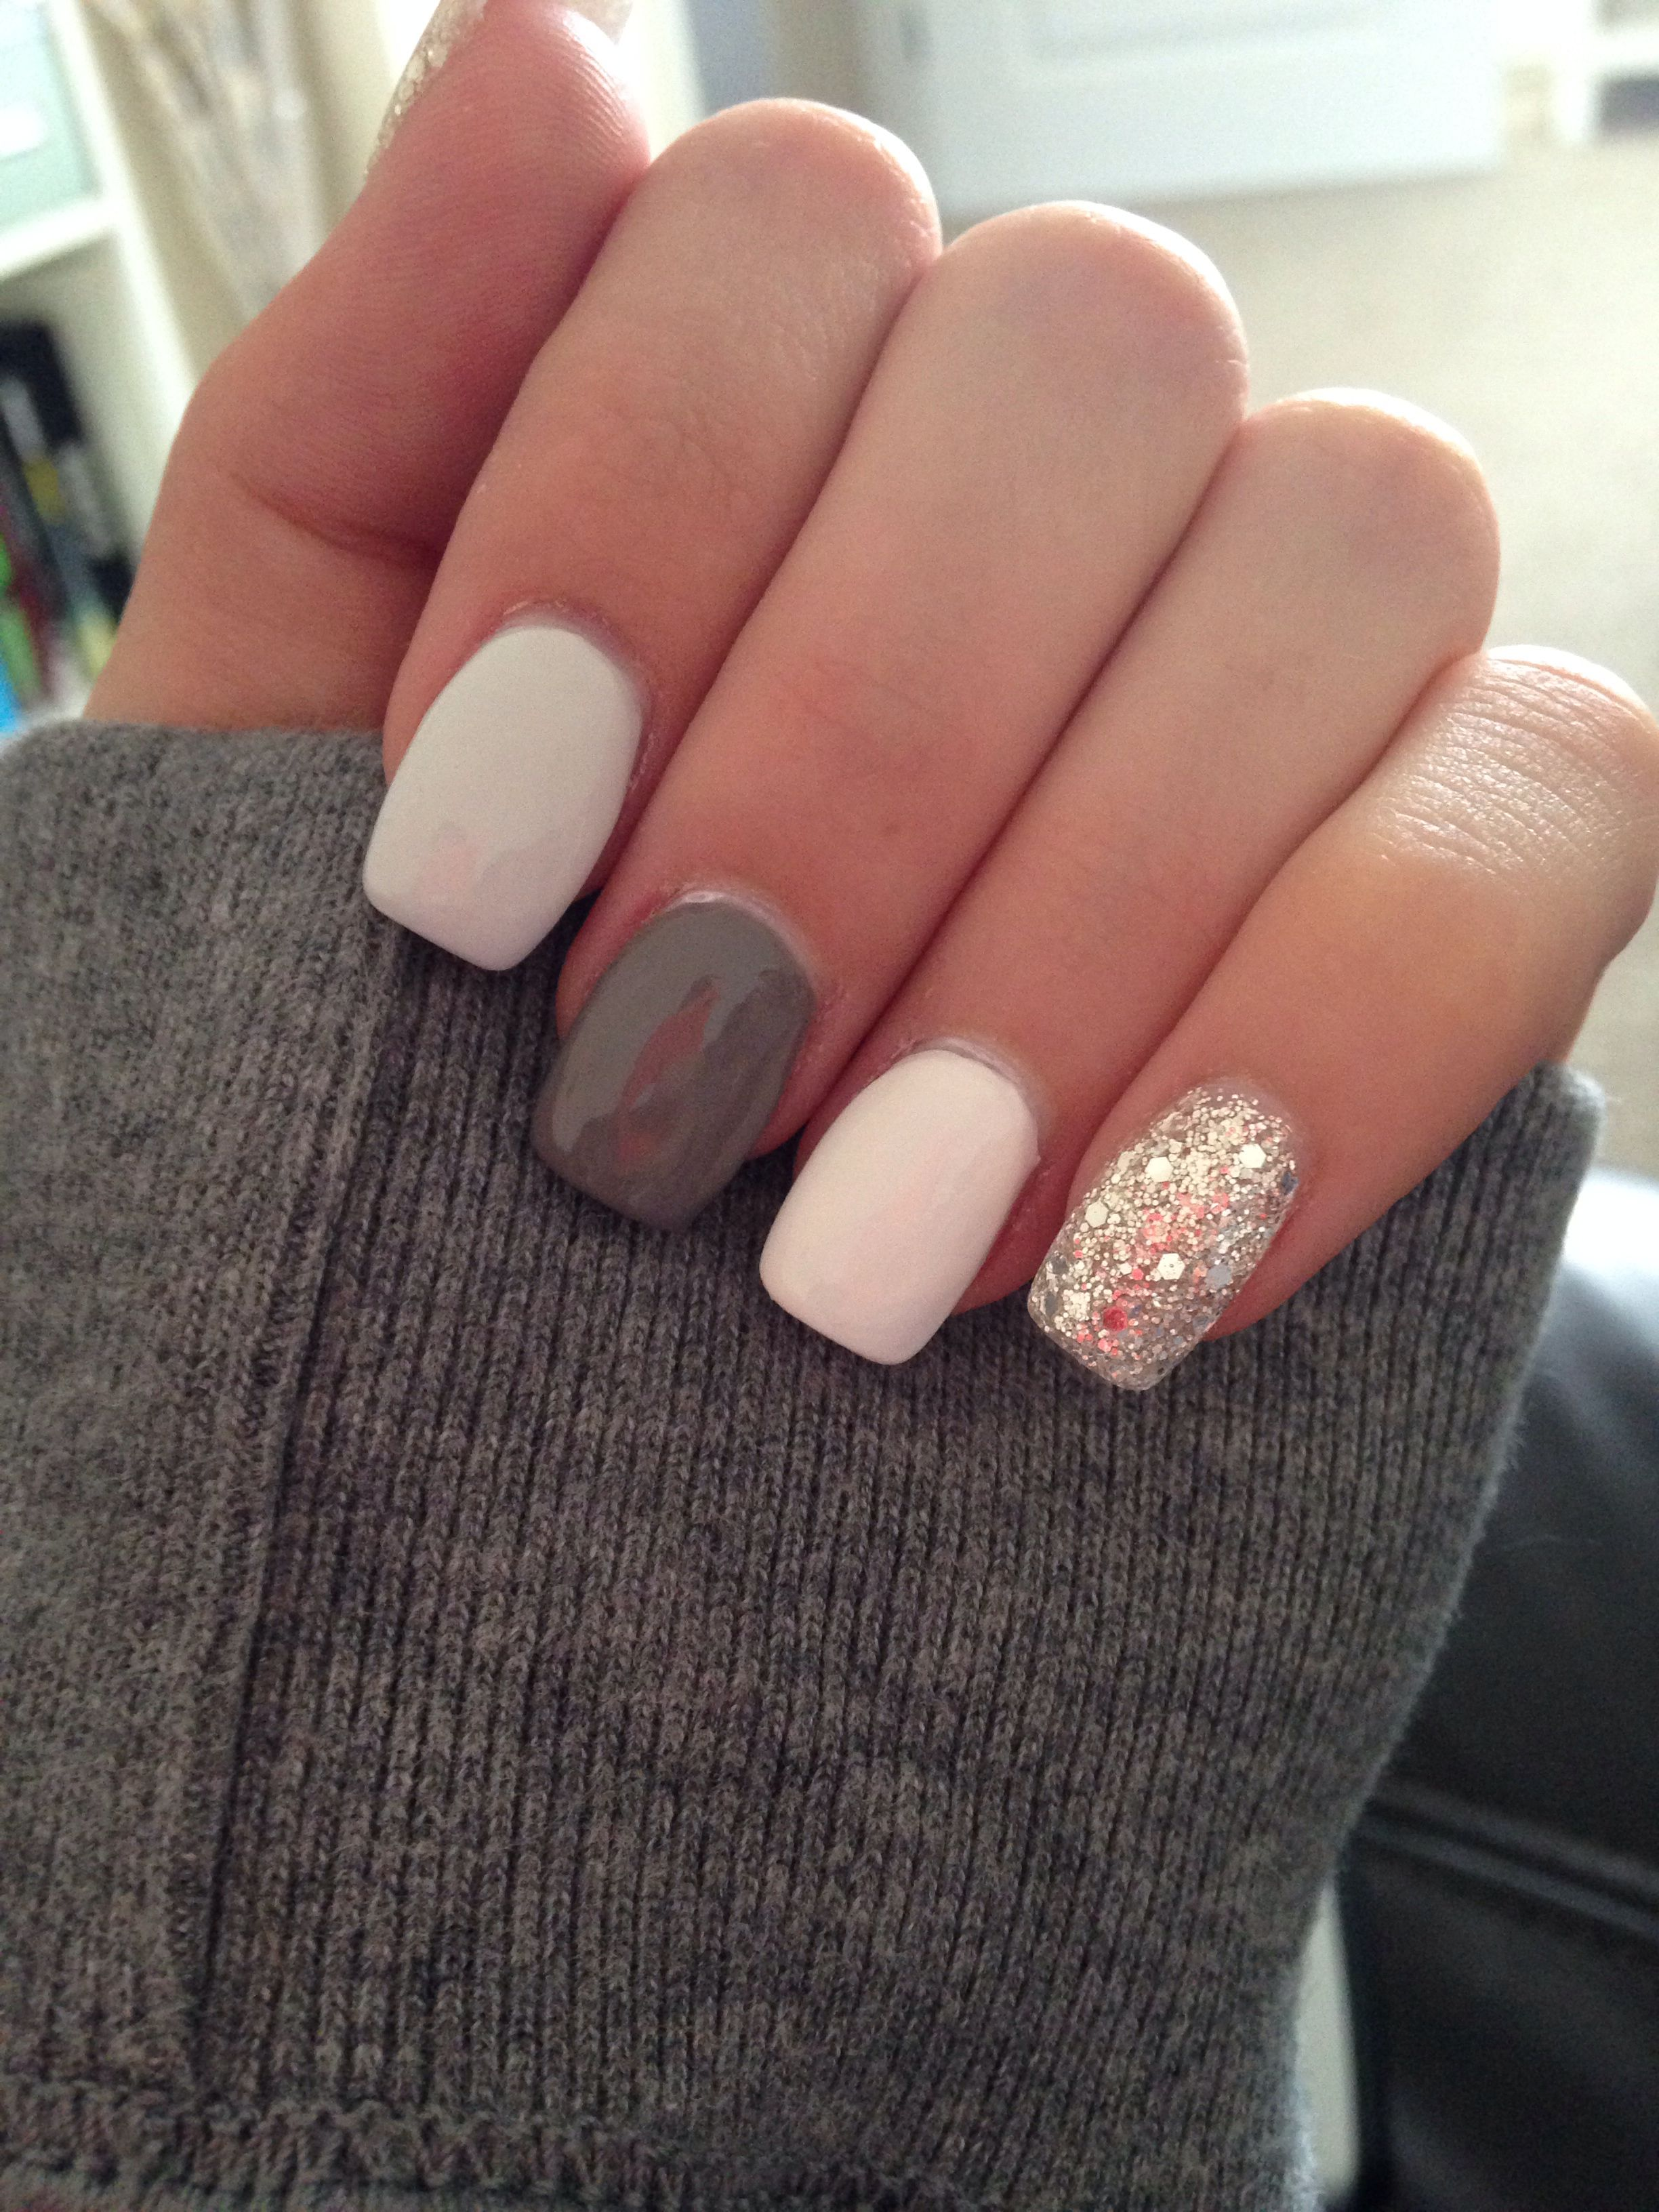 Grey White And Silver Glitter Acrylic Nails Unhas Destacadas Unhas Decoradas Unhas Coloridas